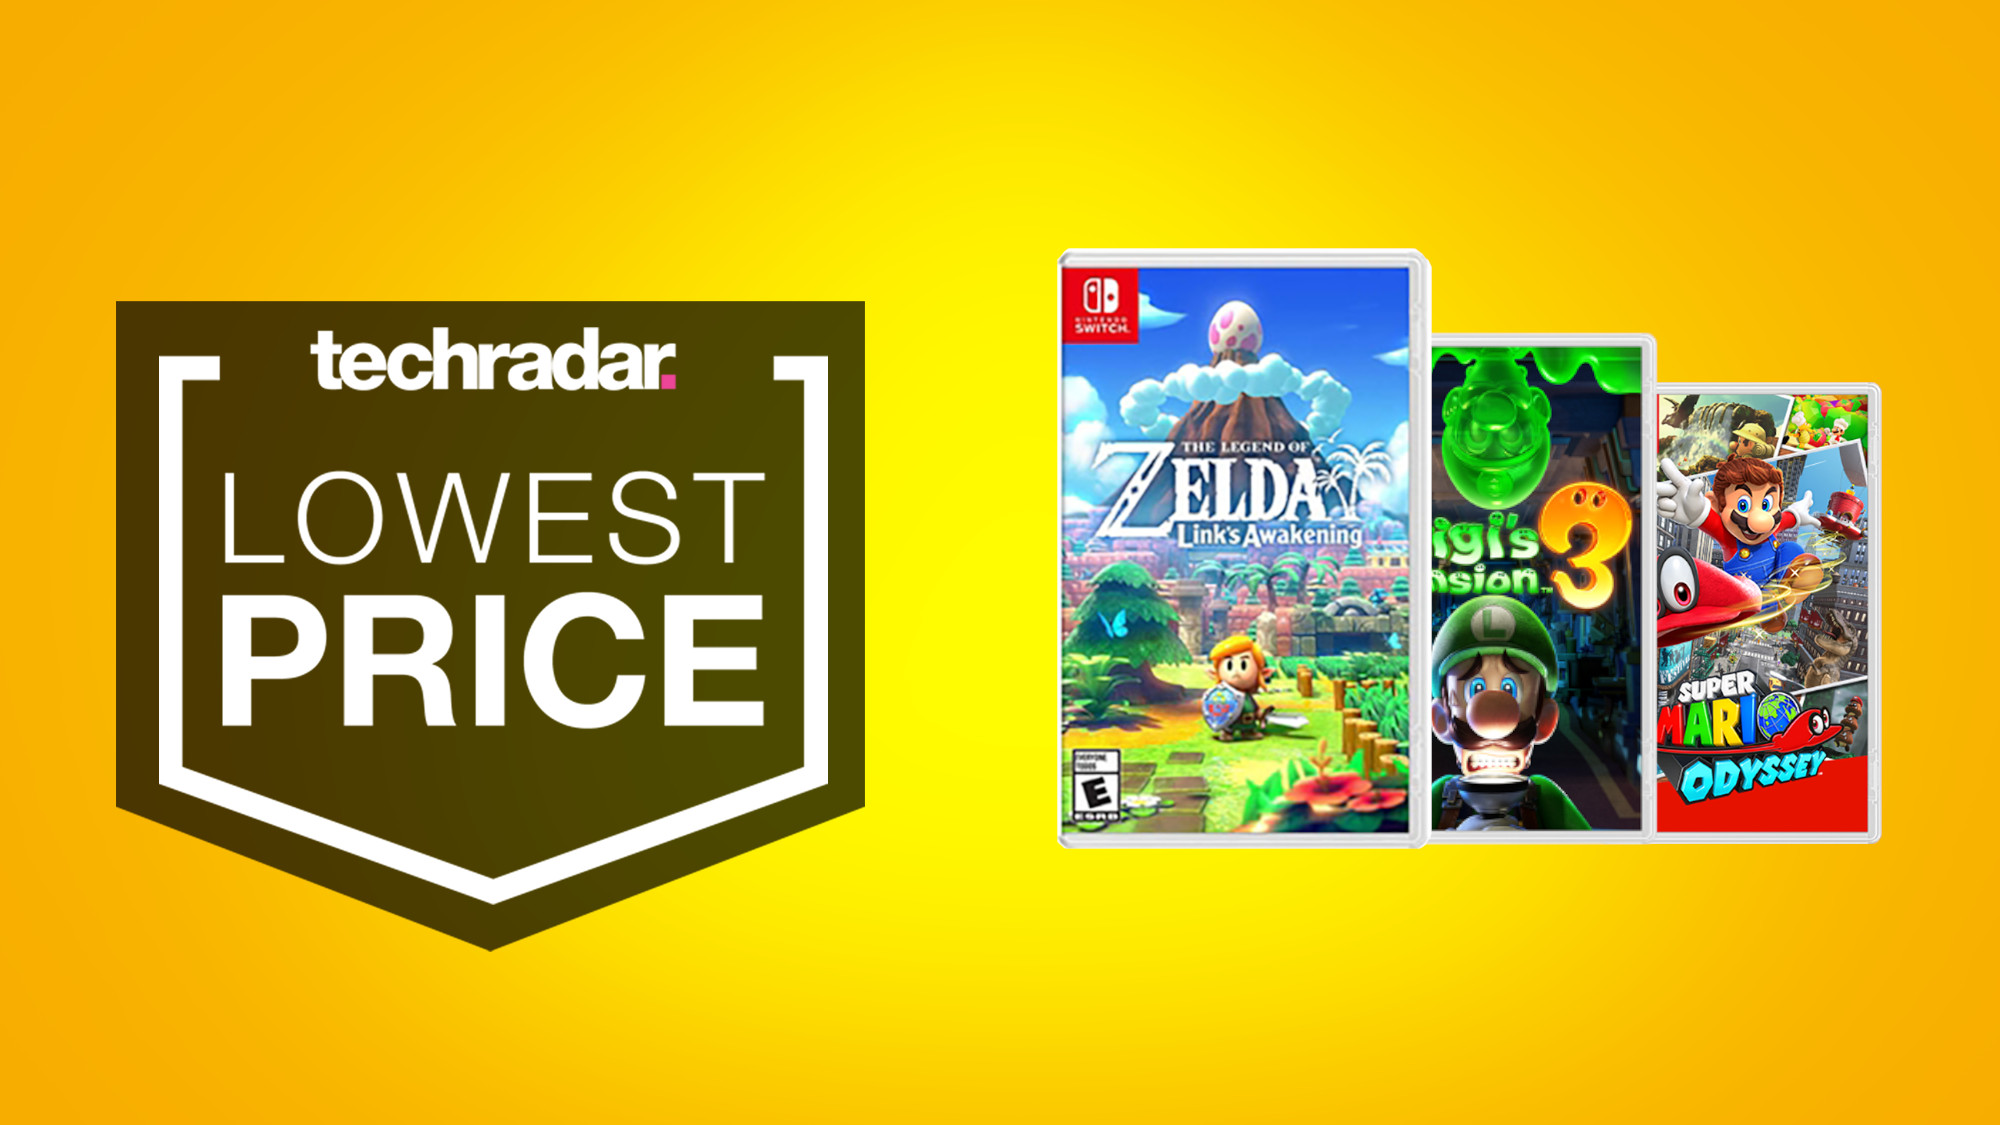 nintendo-switch-deals-from-walmart-slash-prices-of-leading-games-to-under-$40